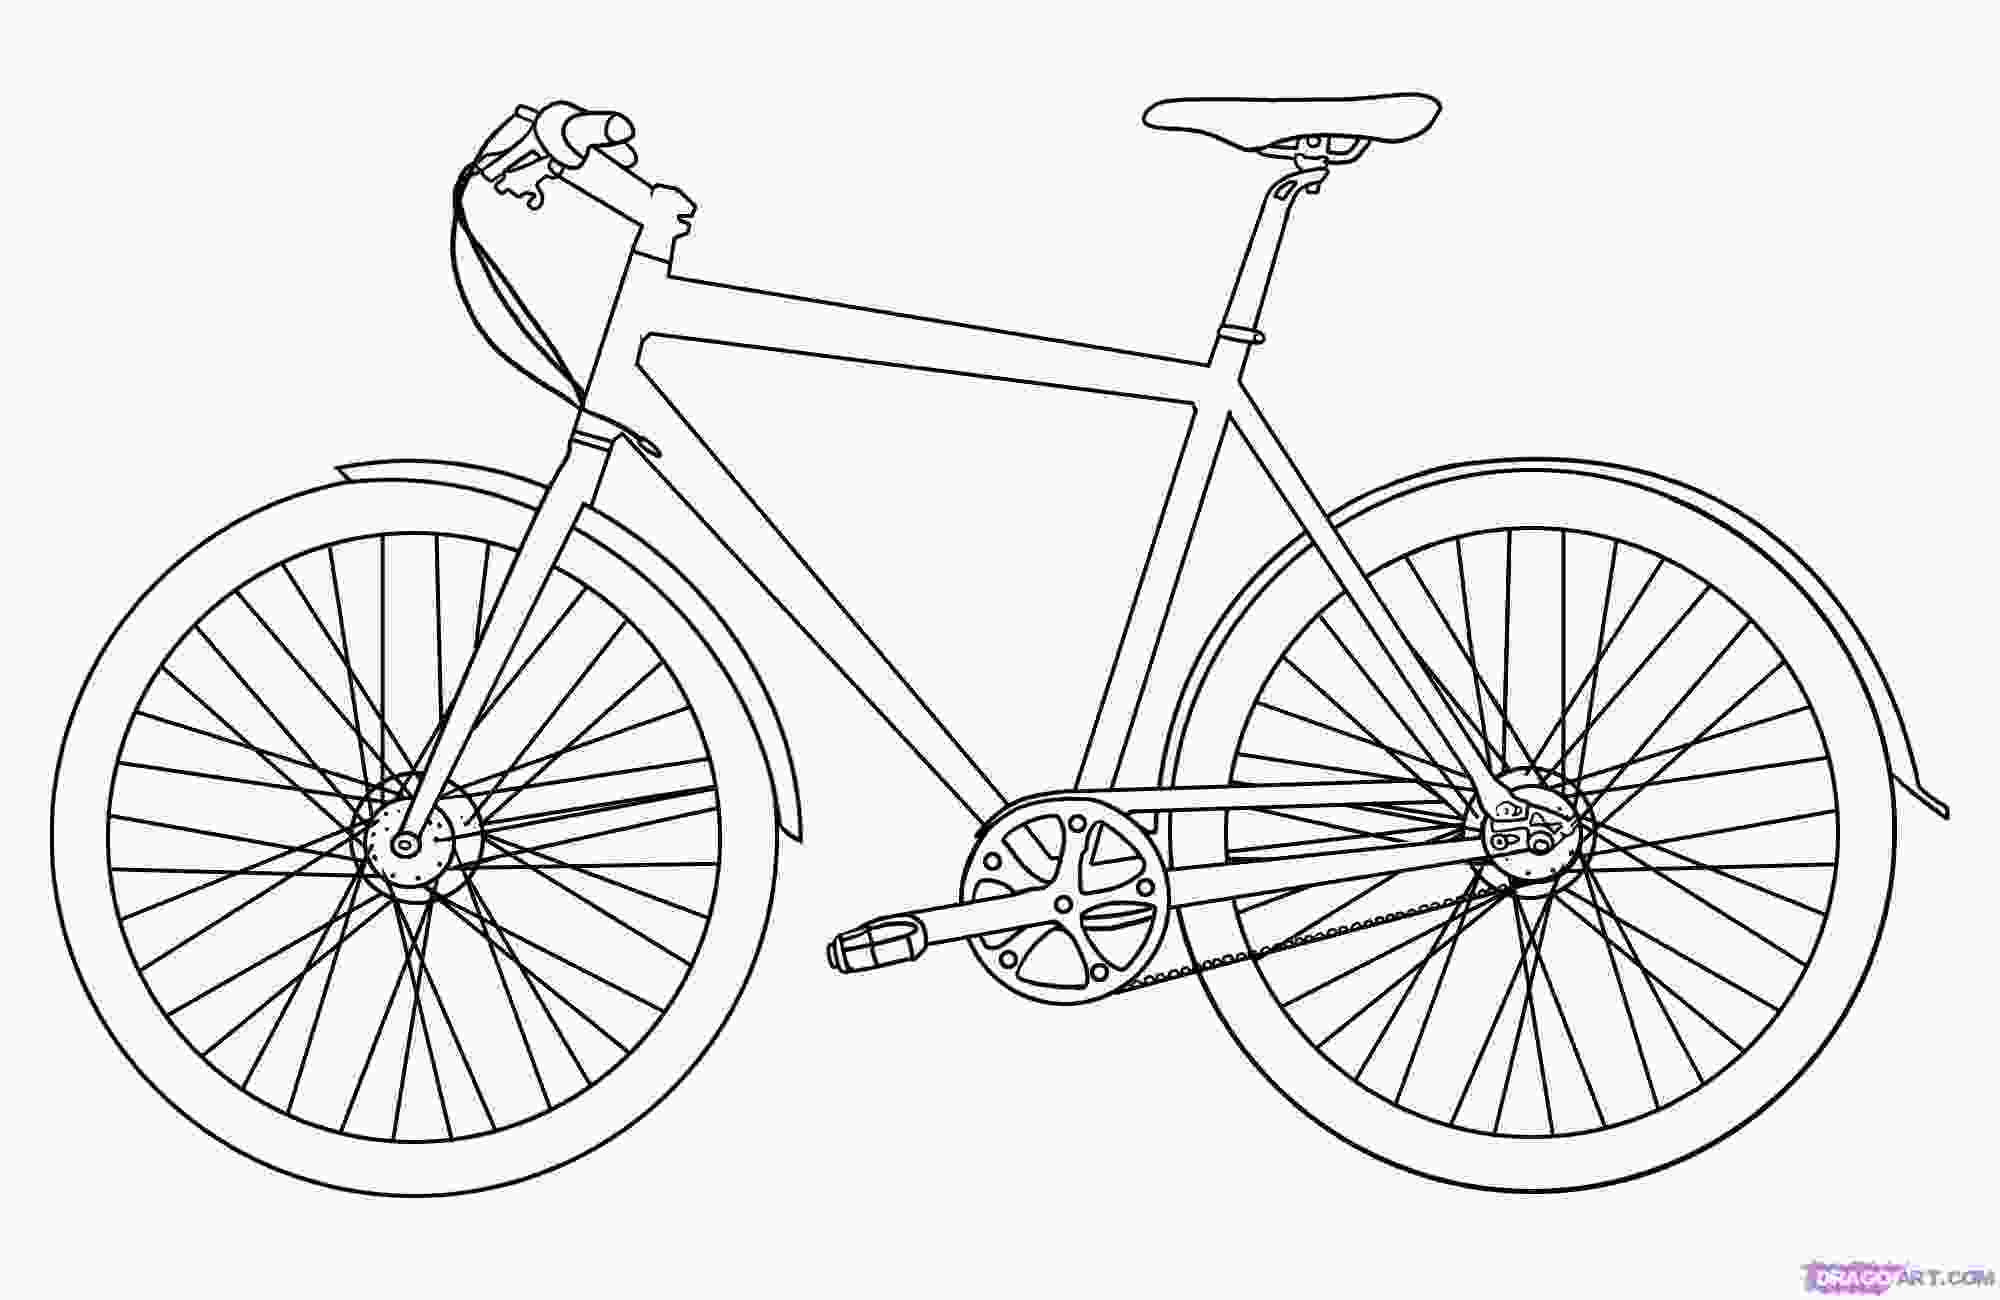 easy to draw bike large image step 5 how to draw a bike art lessons